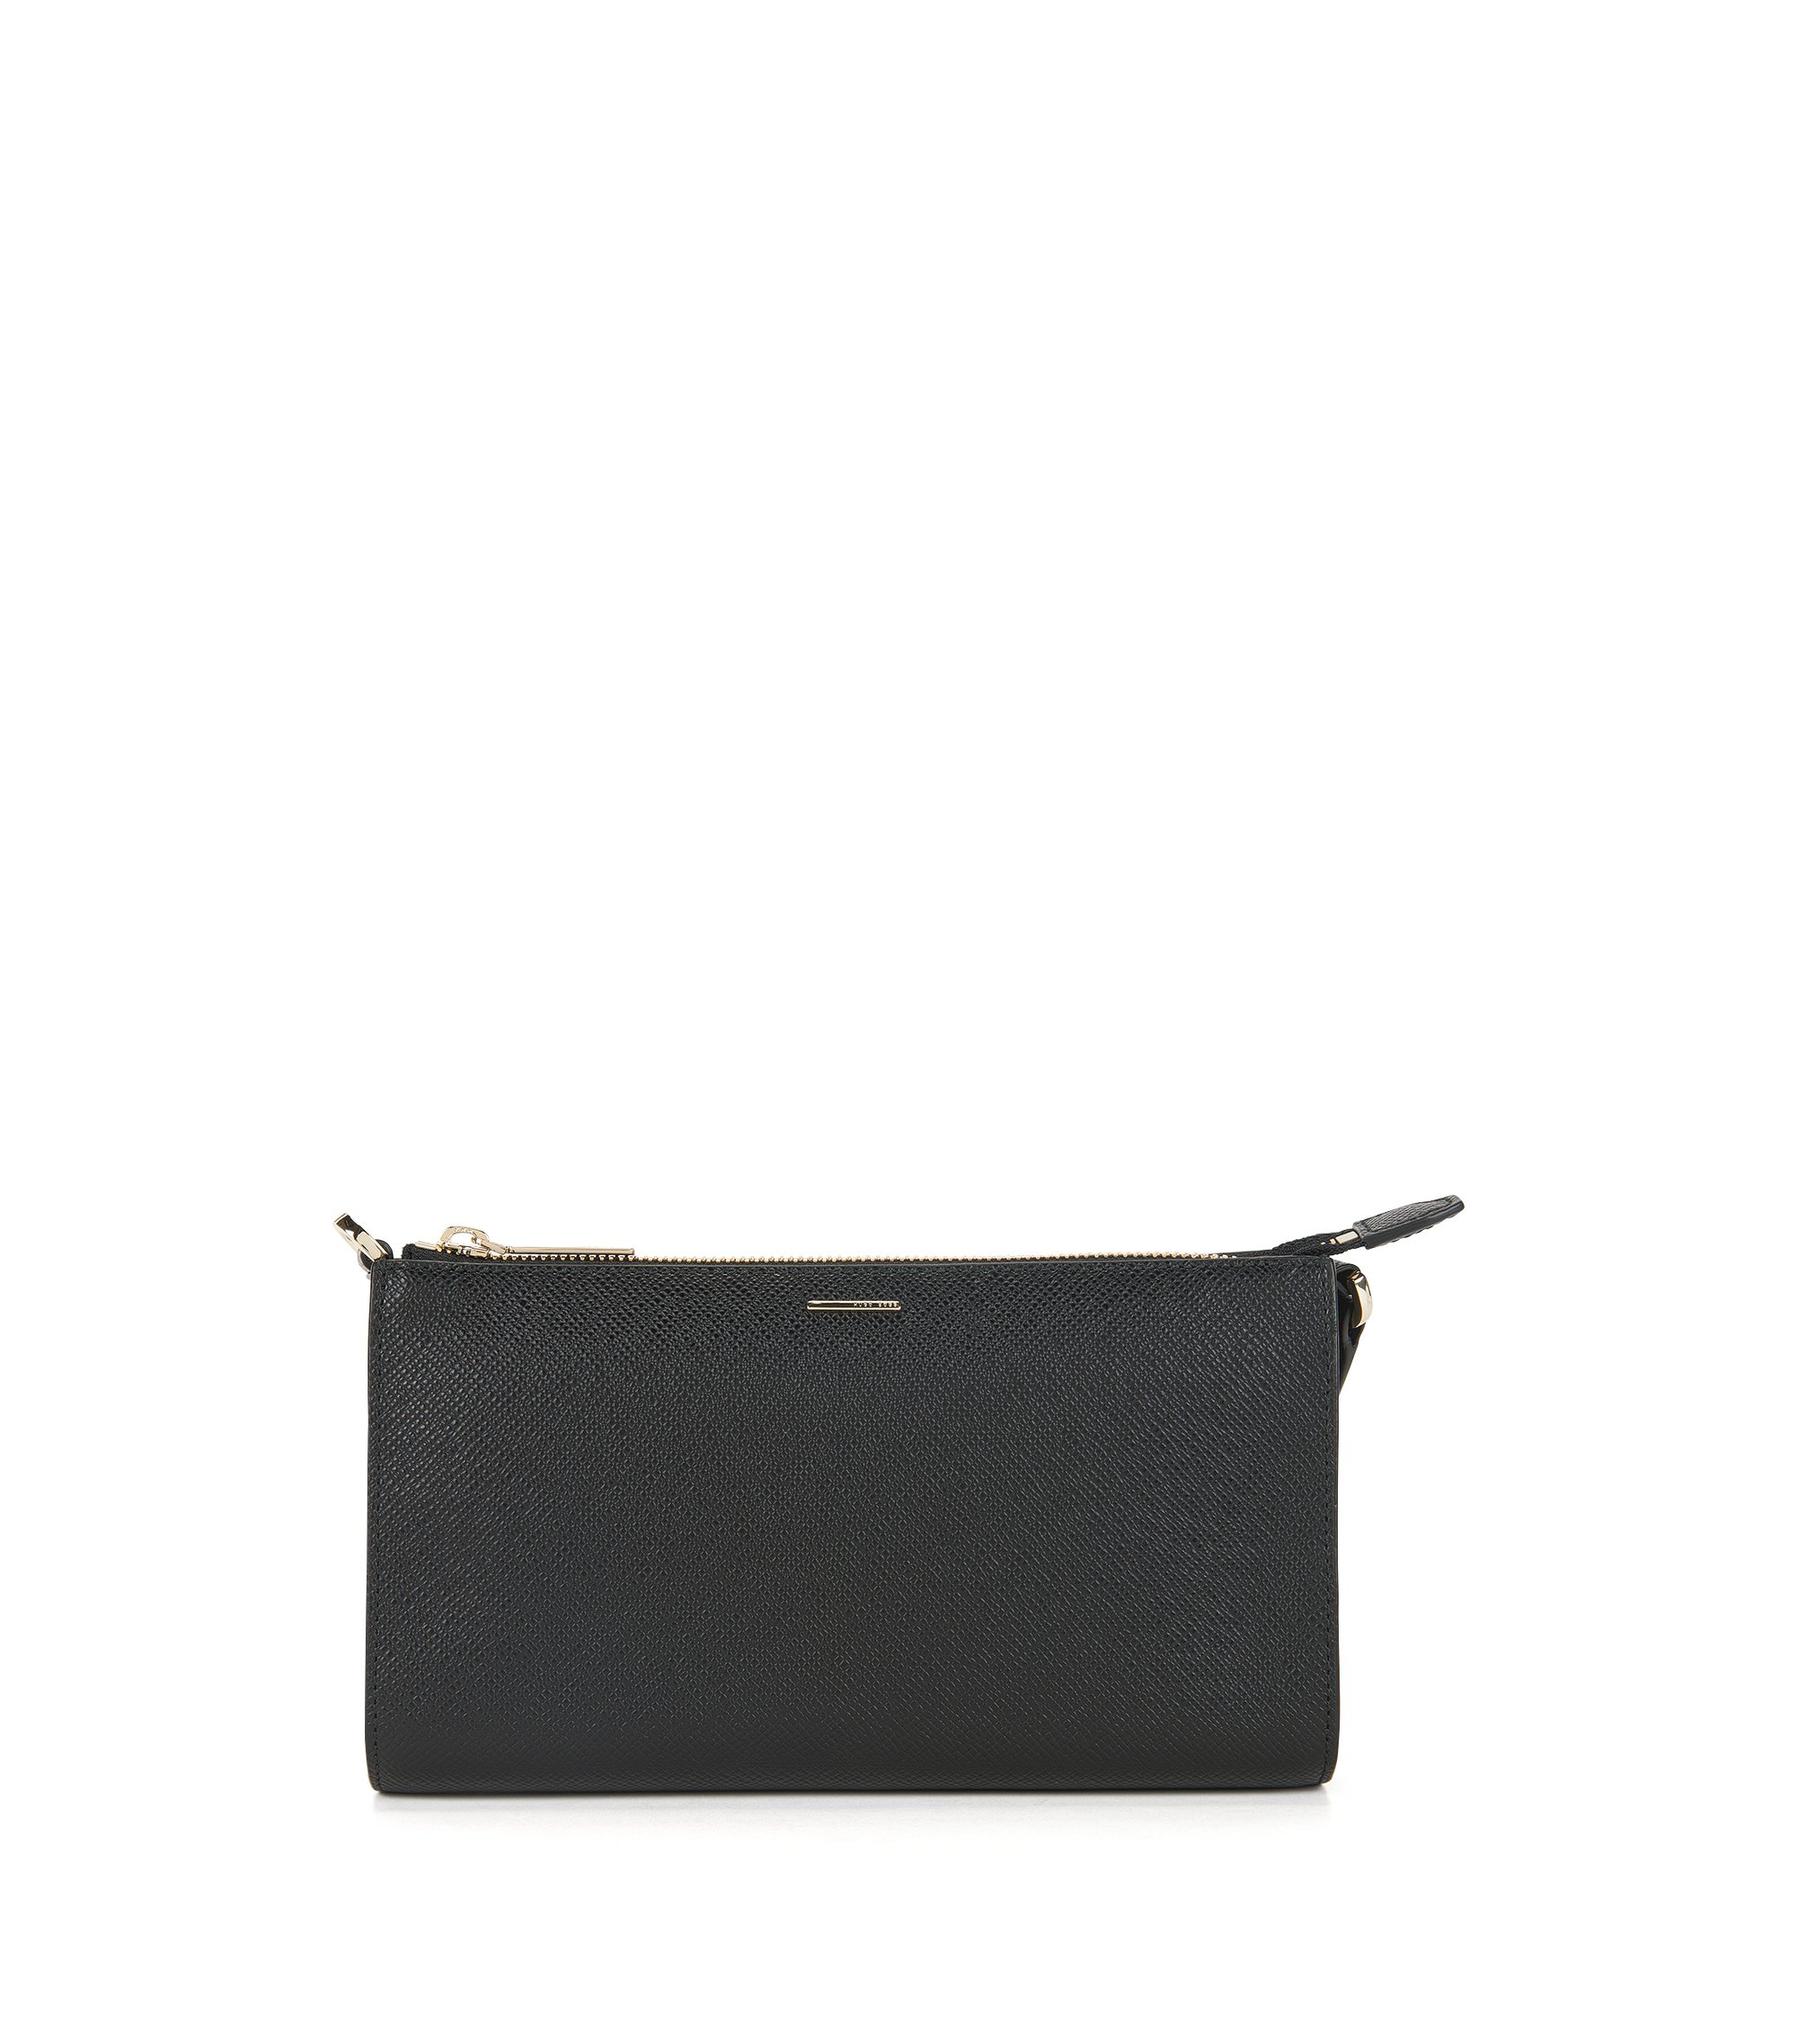 Calfskin Embossed Clutch | Staple Mini Bag FPB, Black